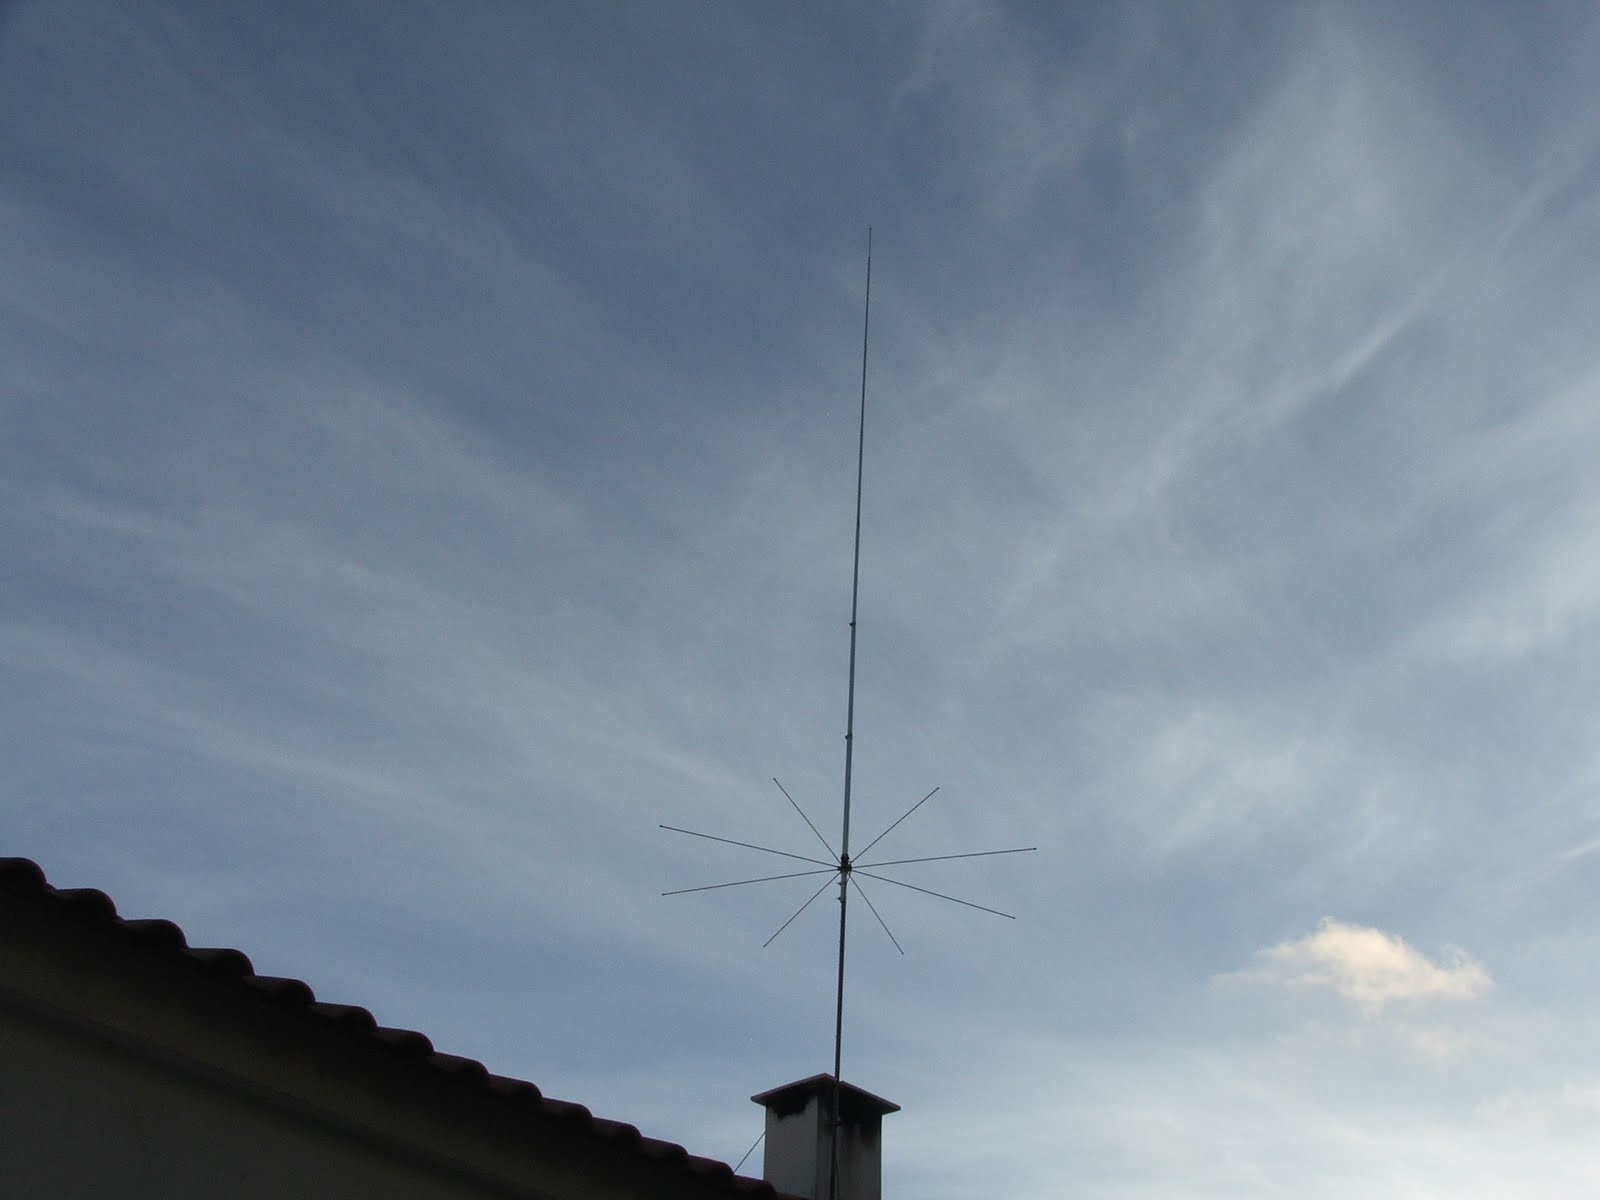 Sirio 827 (26.4 - 28.4 Mhz) CB/10M 3000W Tunable Base Antenna